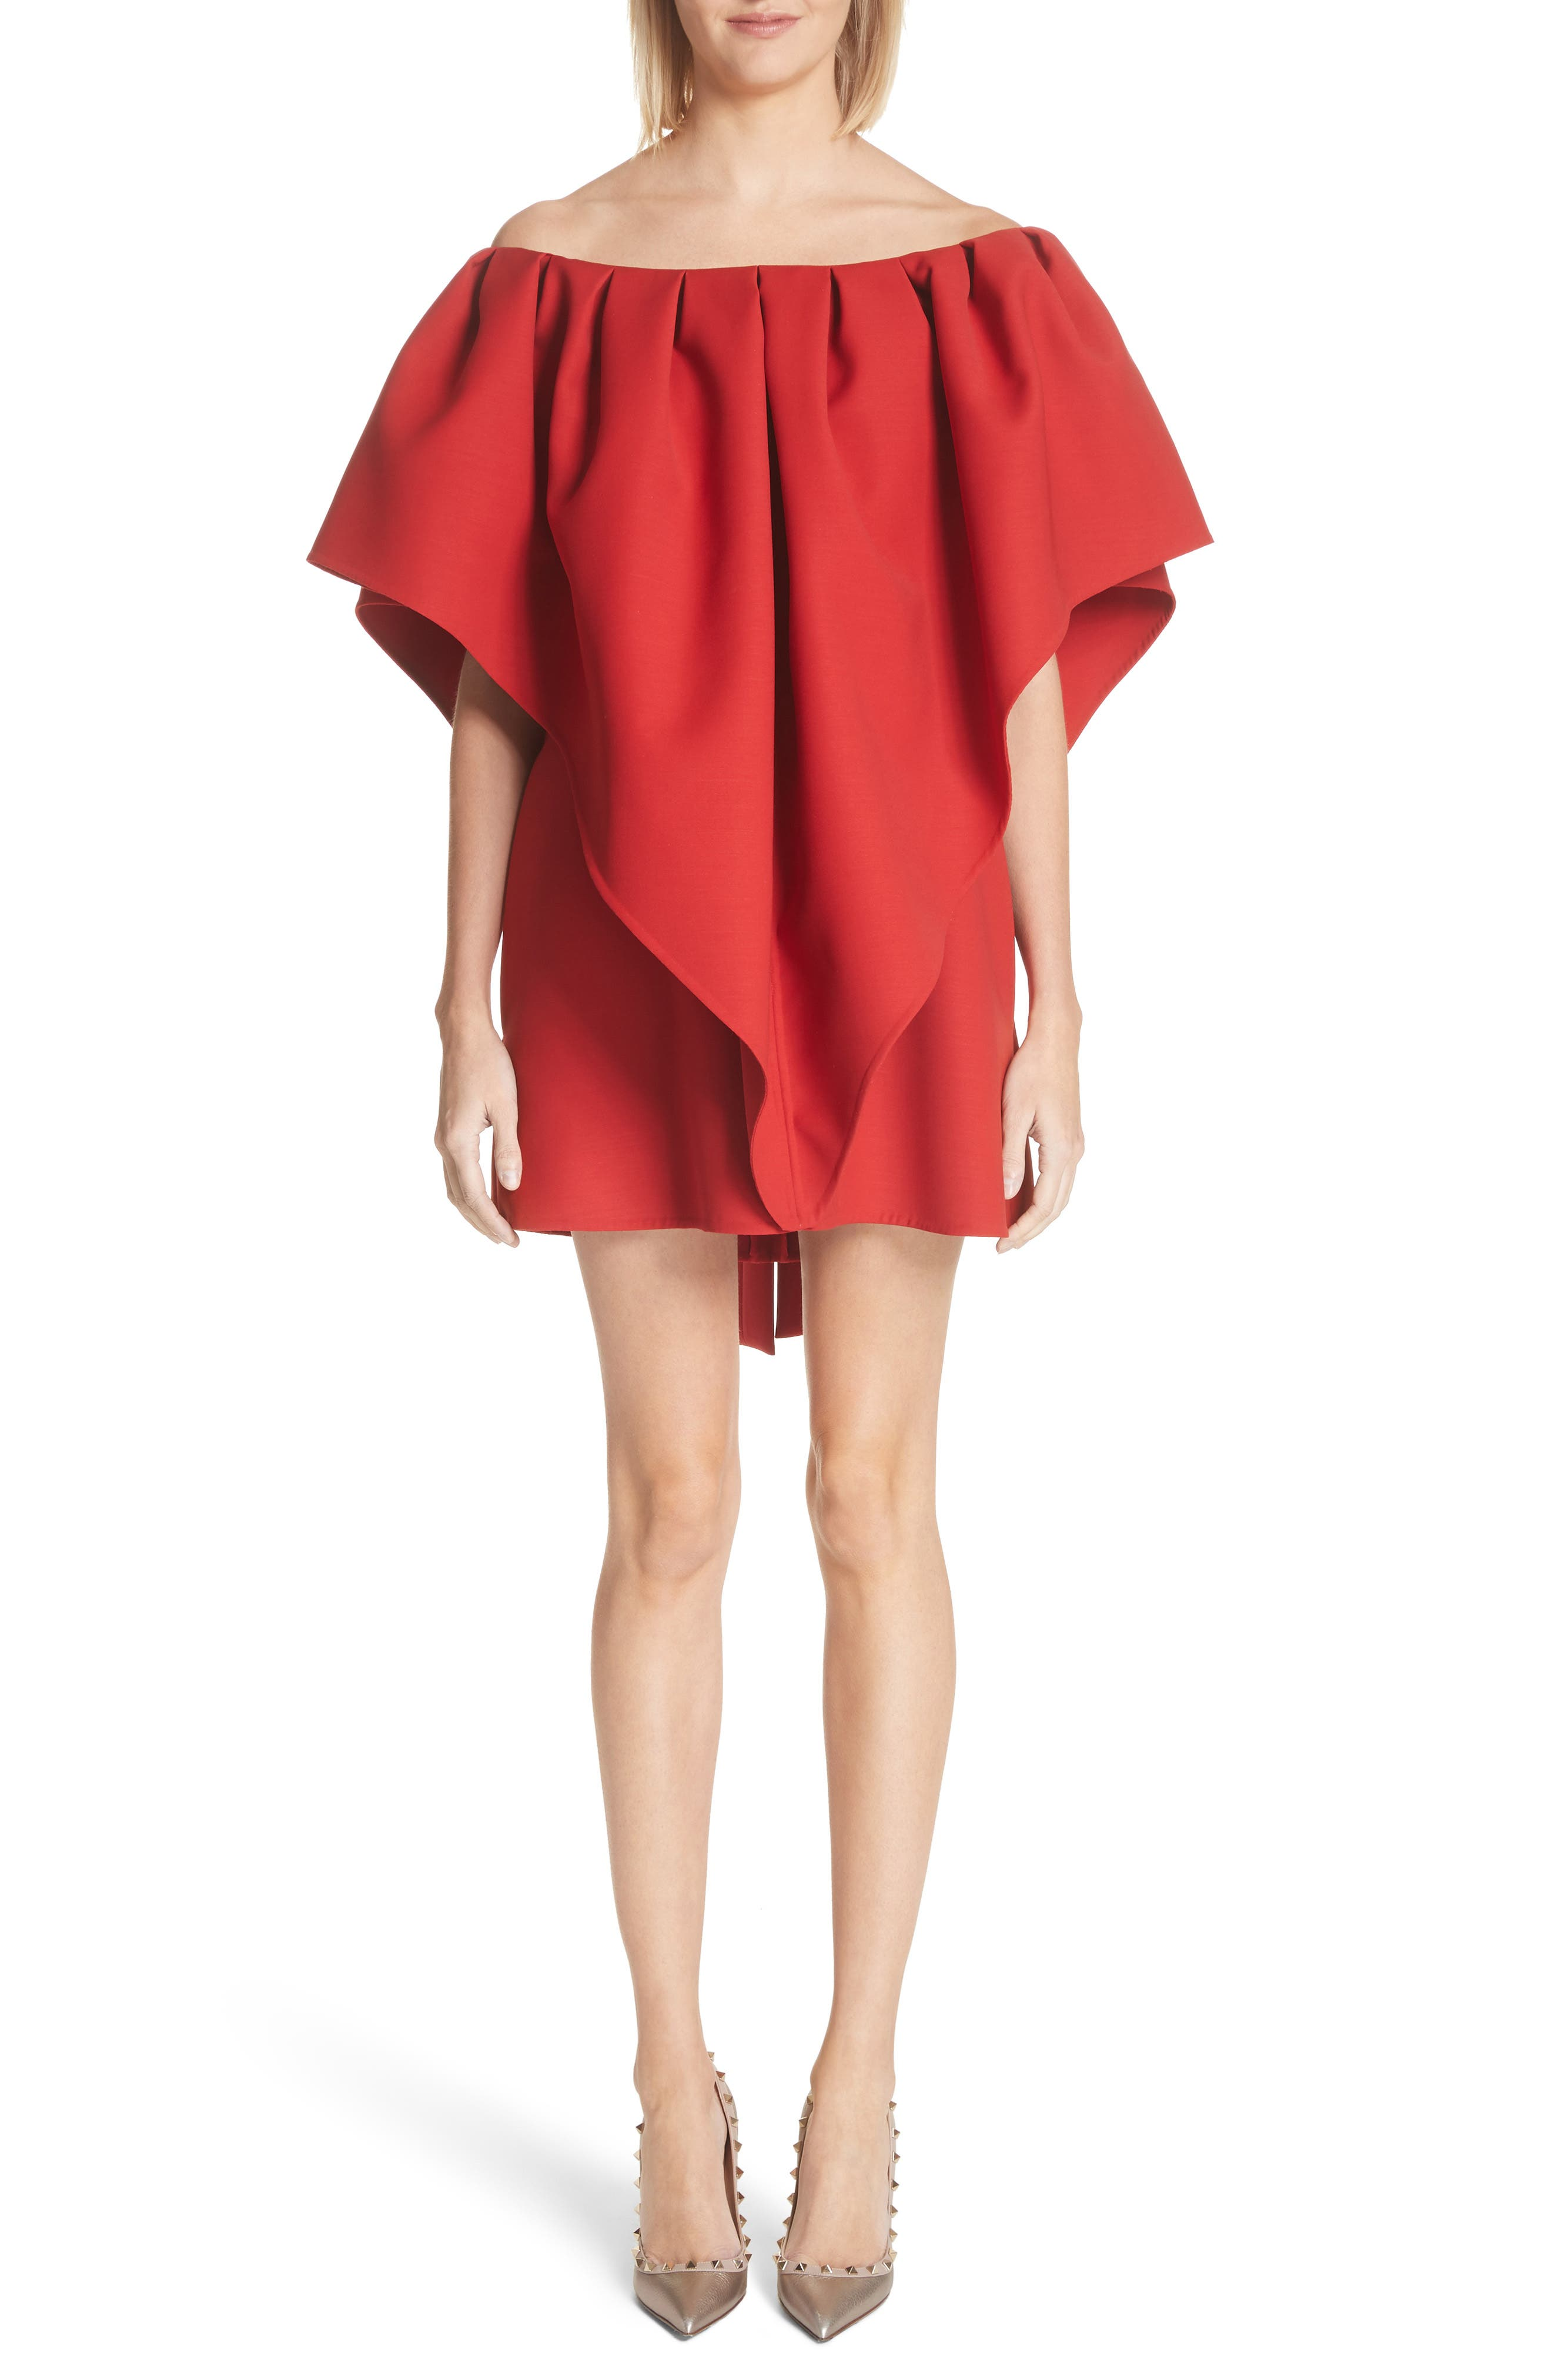 Valentino Very Valentino Off the Shoulder Dress